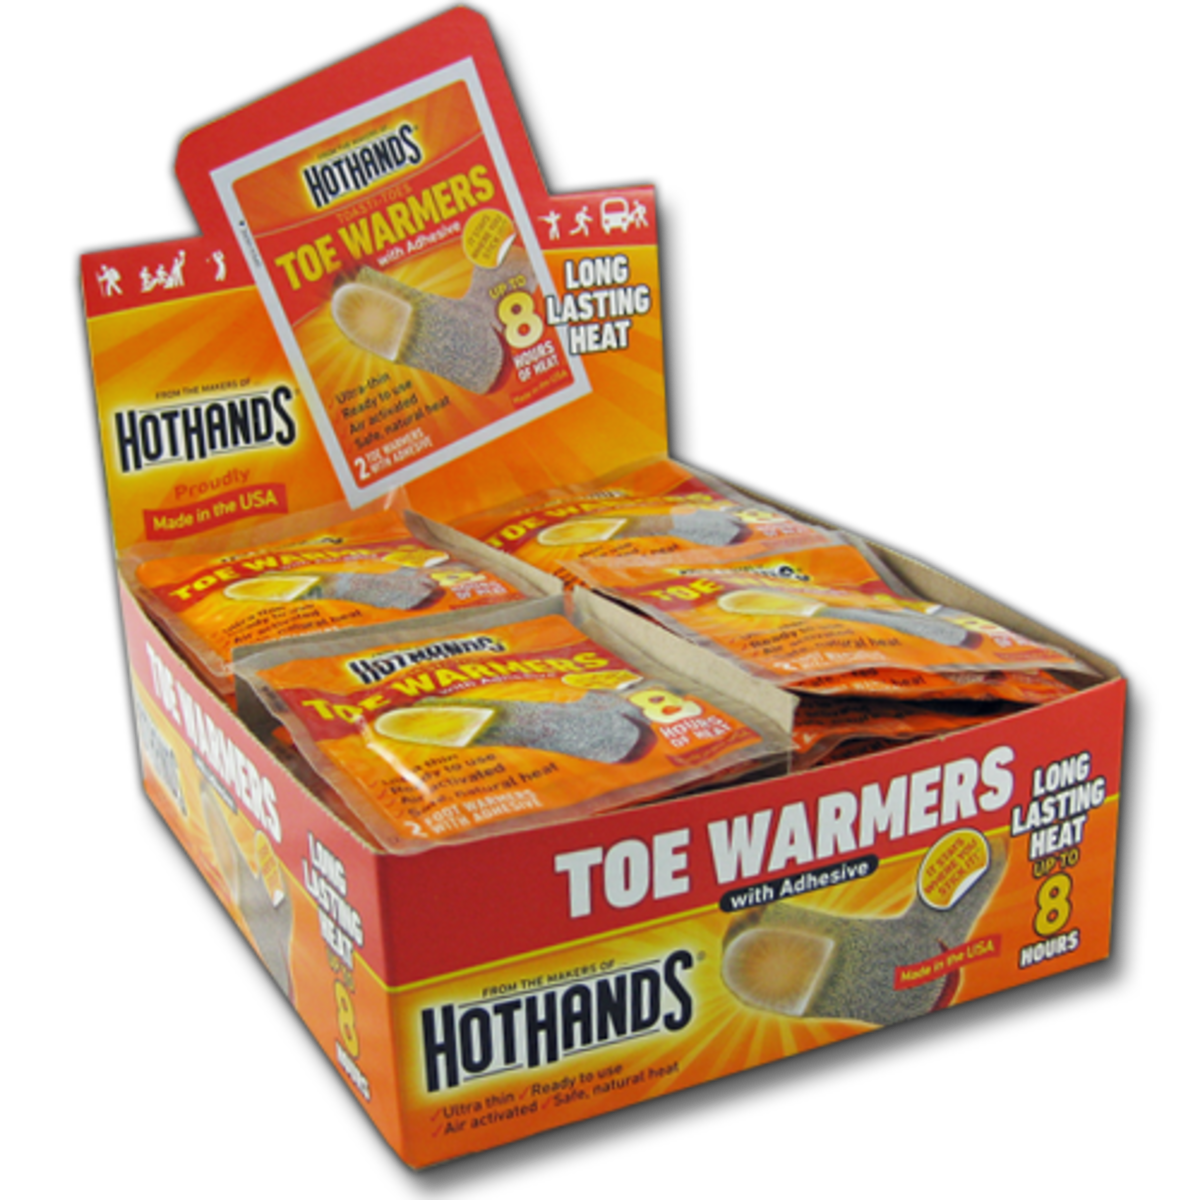 The Hot Hands brand makes both hand and toe warmers.